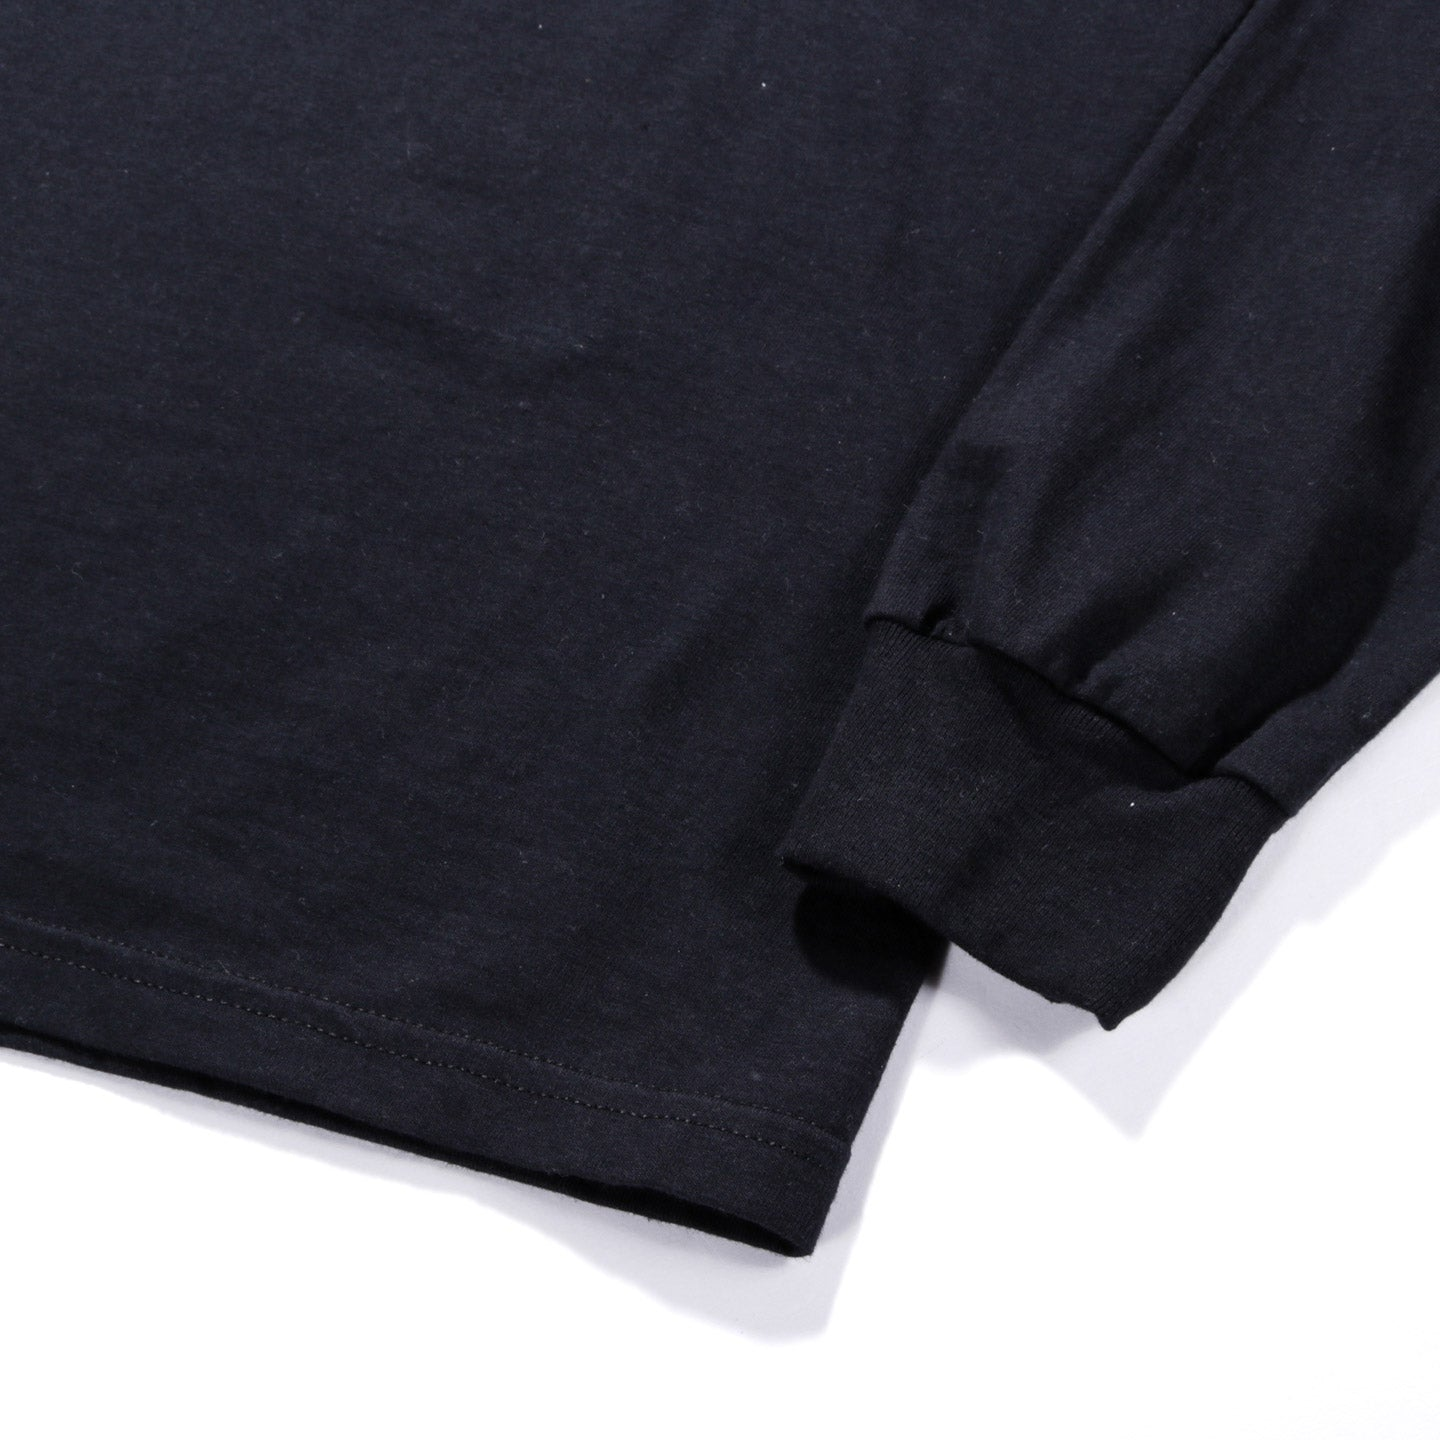 LQQK STUDIO THE DOM COREY LS TEE BLACK